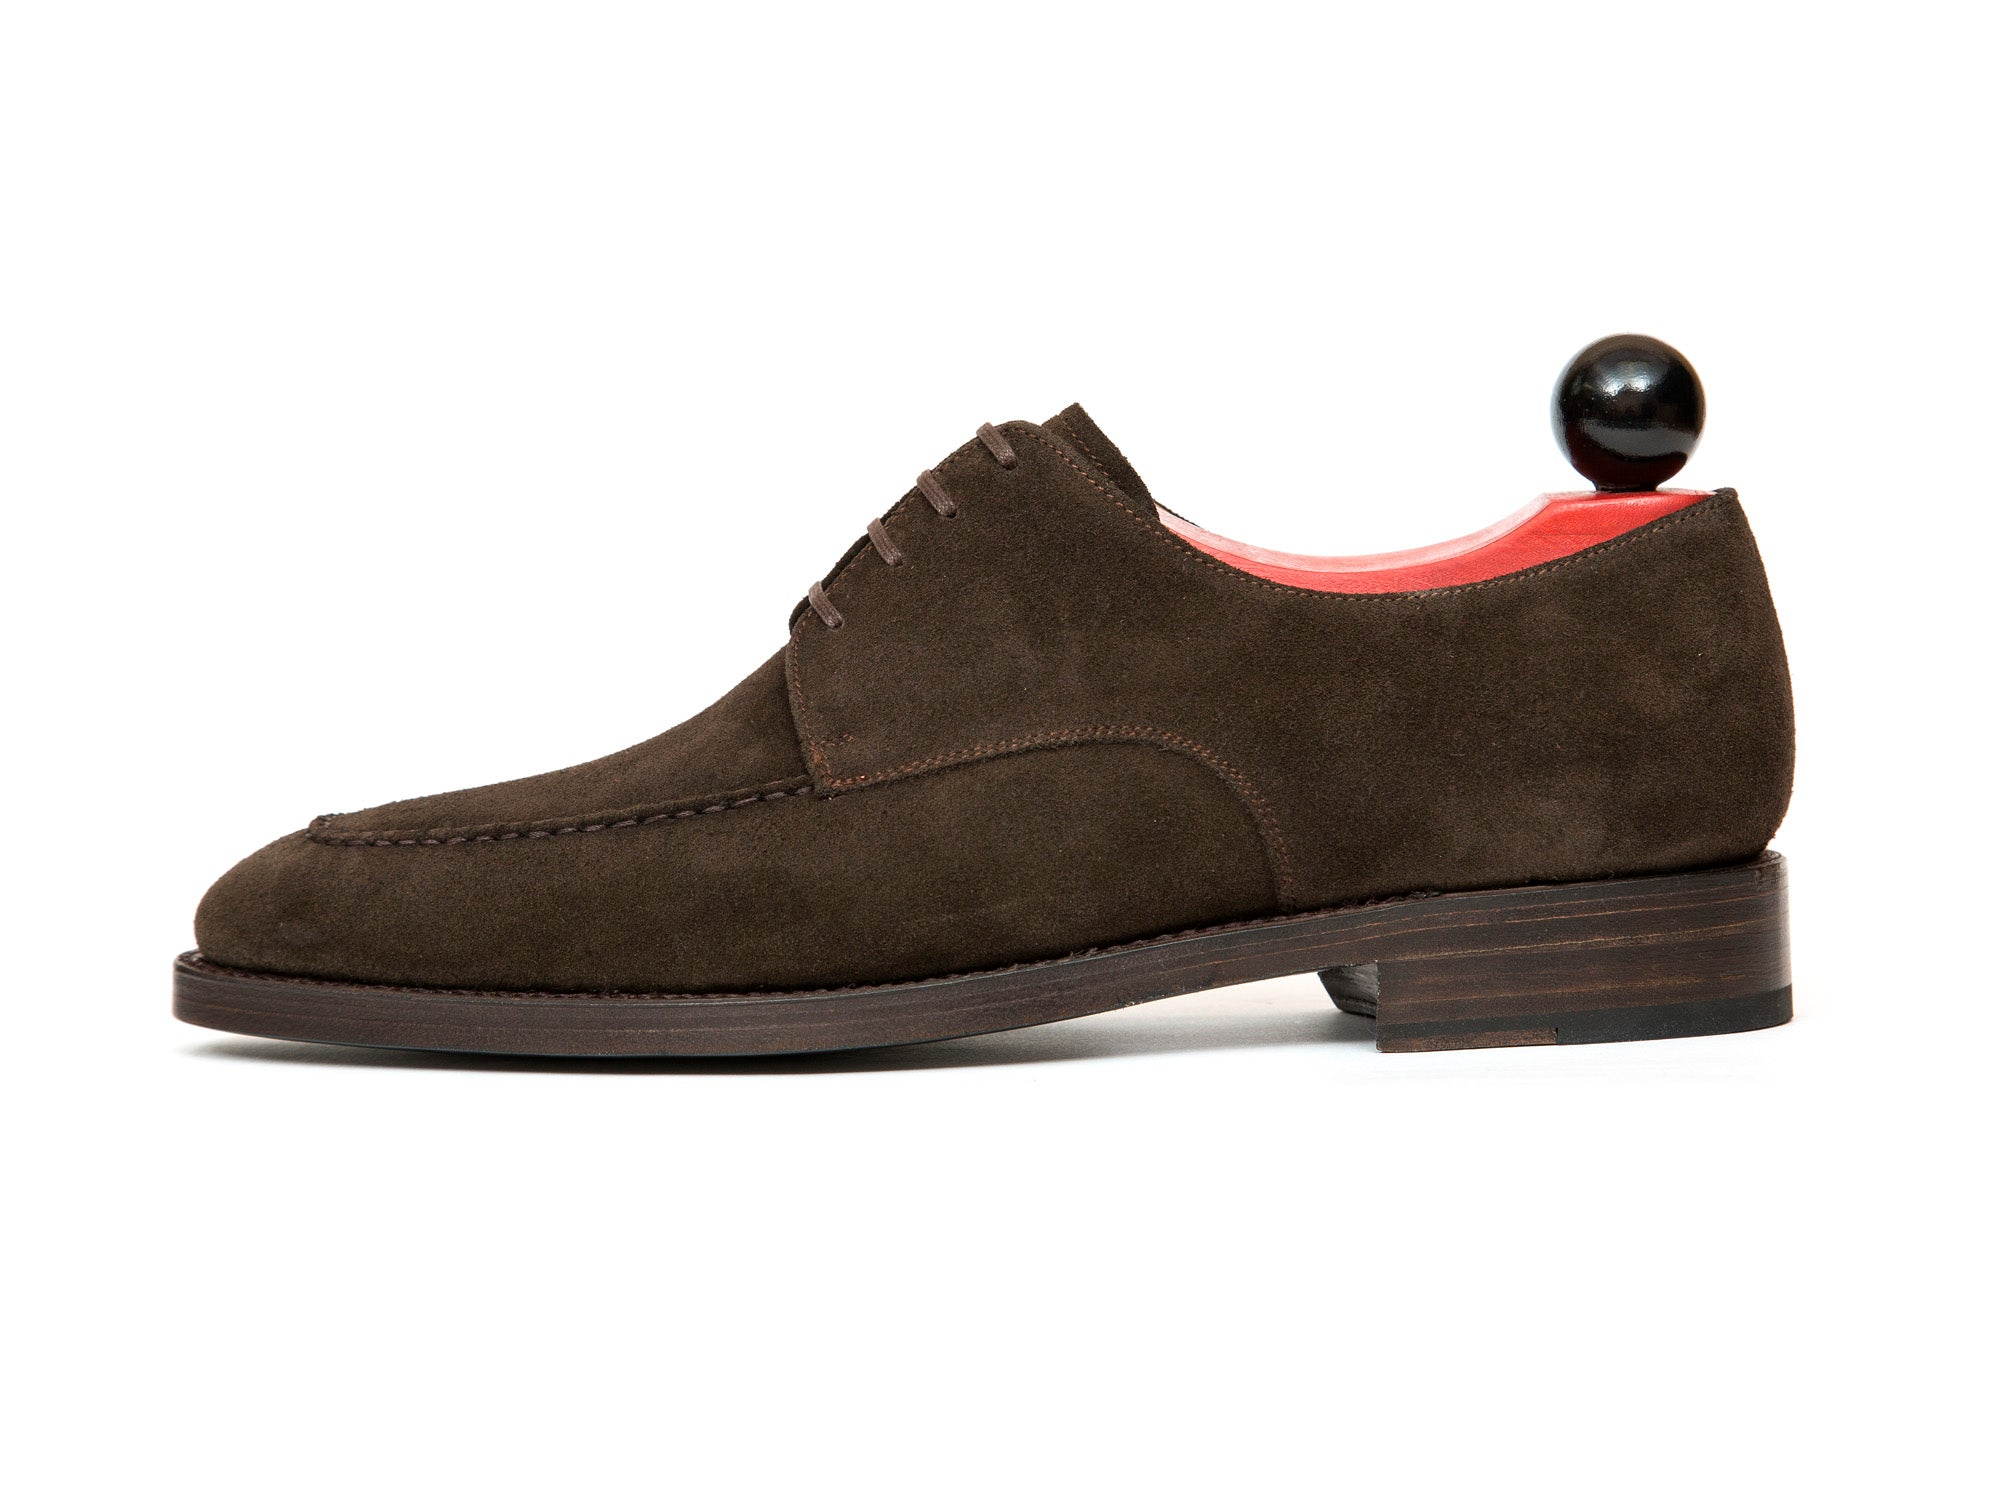 Lynwood - MTO - Bitter Chocolate Suede - Double Leather Sole